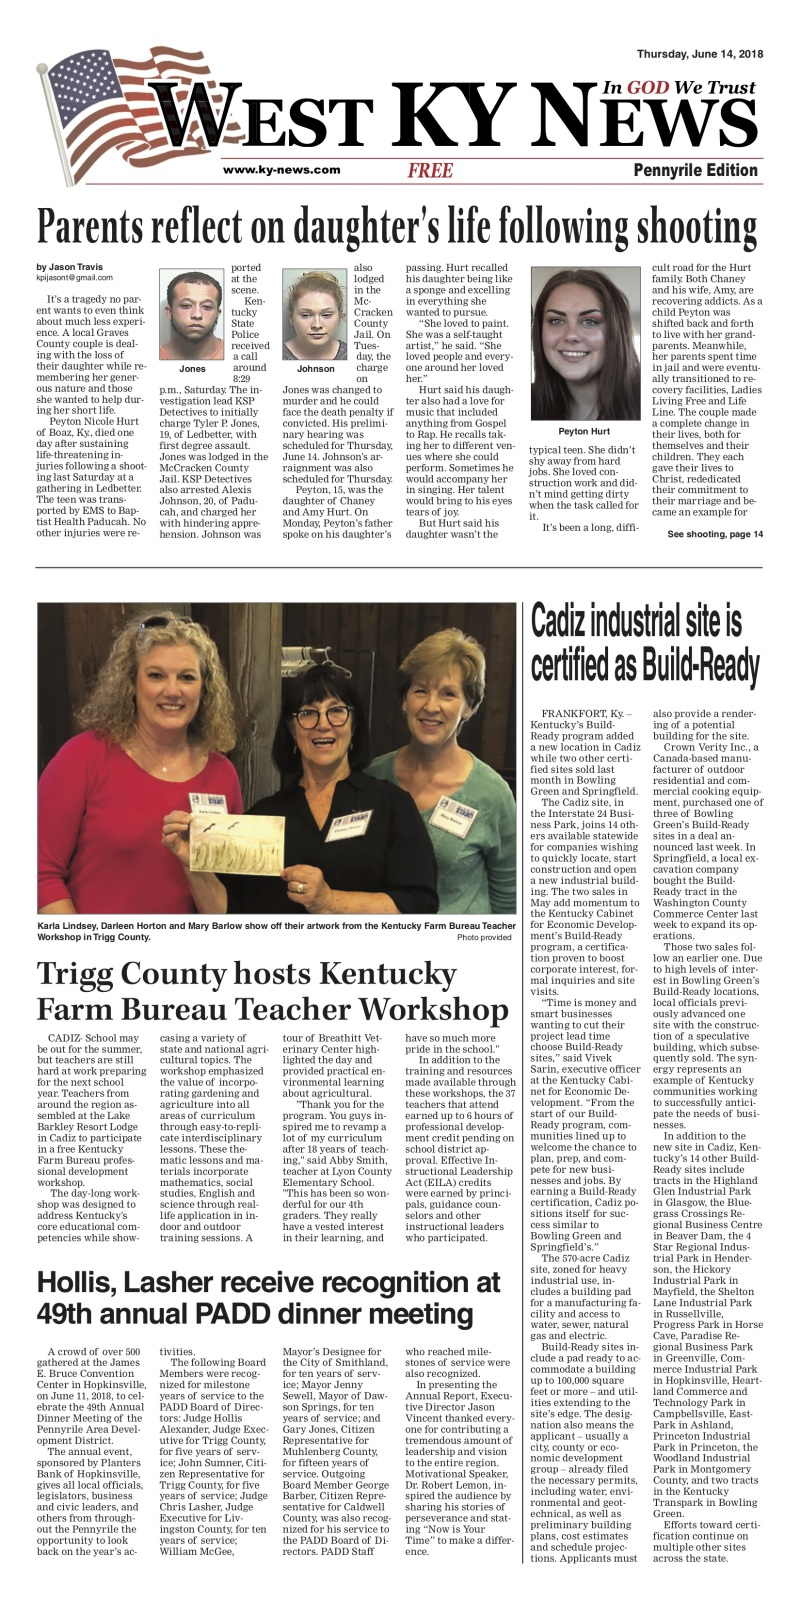 West KY News: Pennyrile Edition 6-14-18